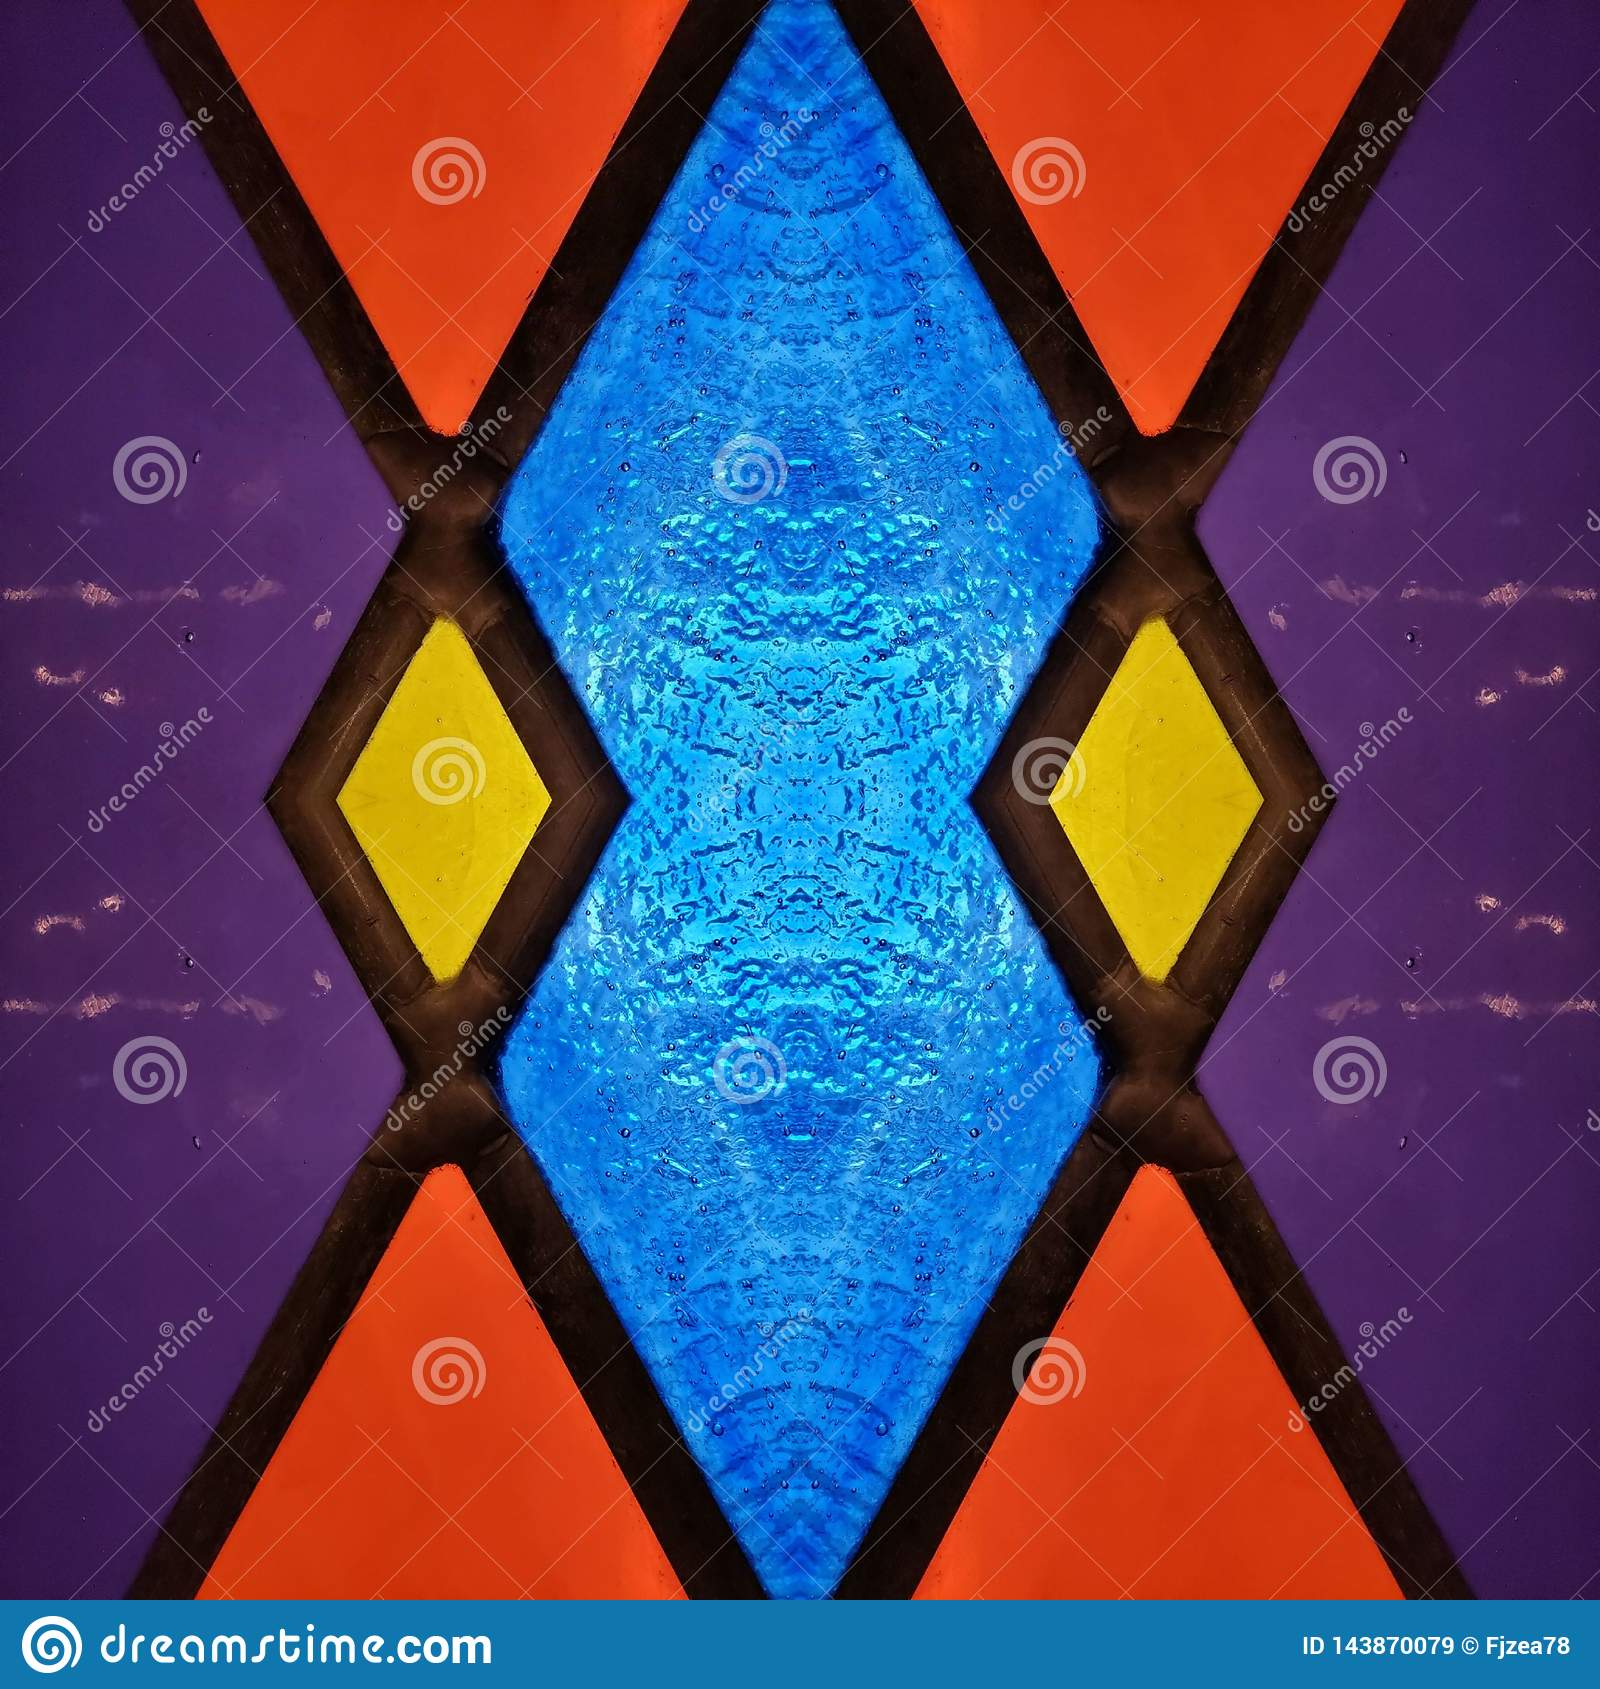 abstract design with stained glass in red, purple, blue and yellow, material for decoration of windows, background and texture